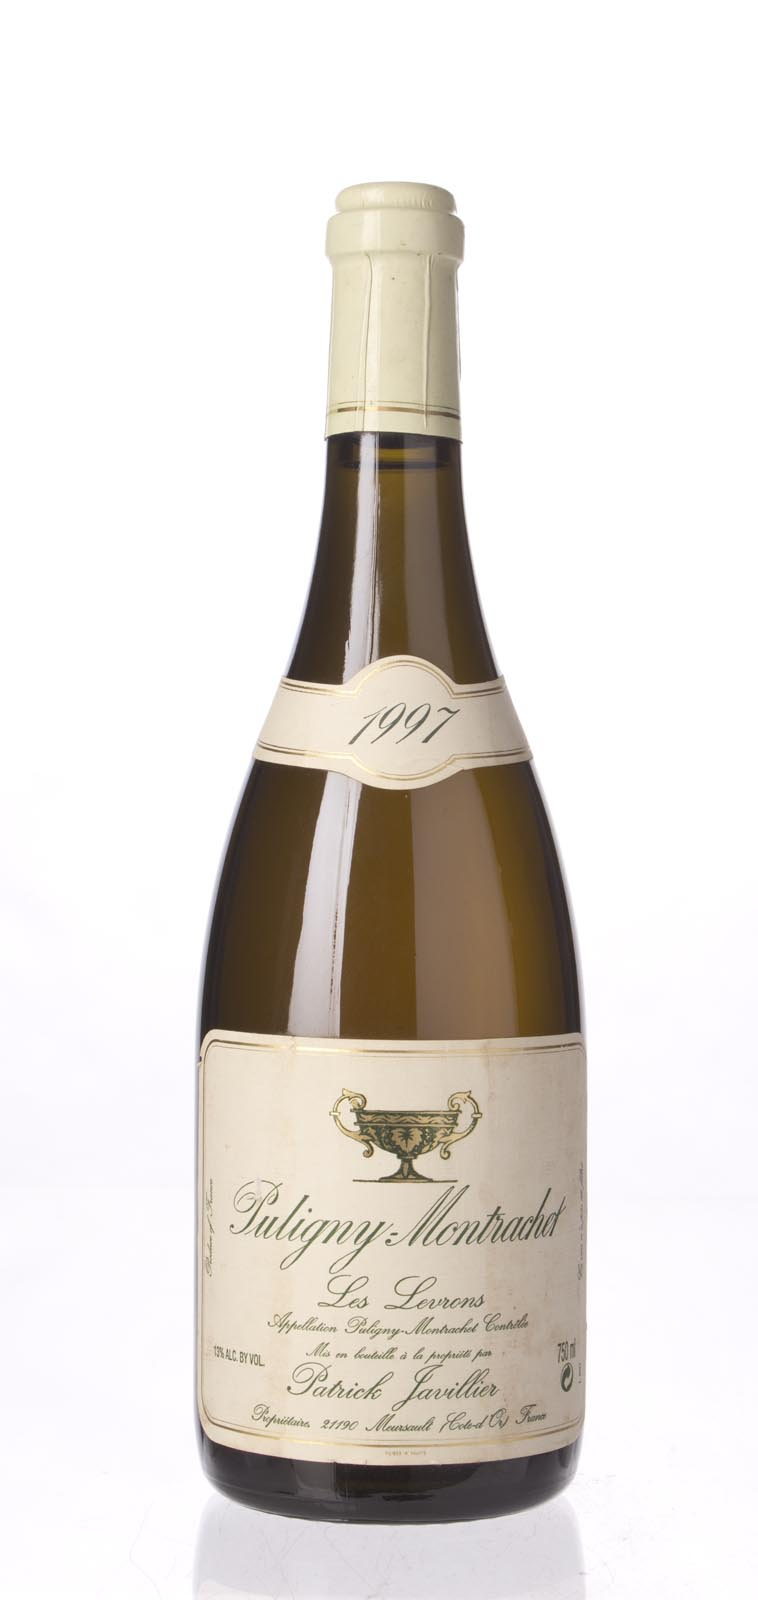 Patrick Javillier Puligny Montrachet les Levrons 1997, 750mL (WA88) from The BPW - Merchants of rare and fine wines.